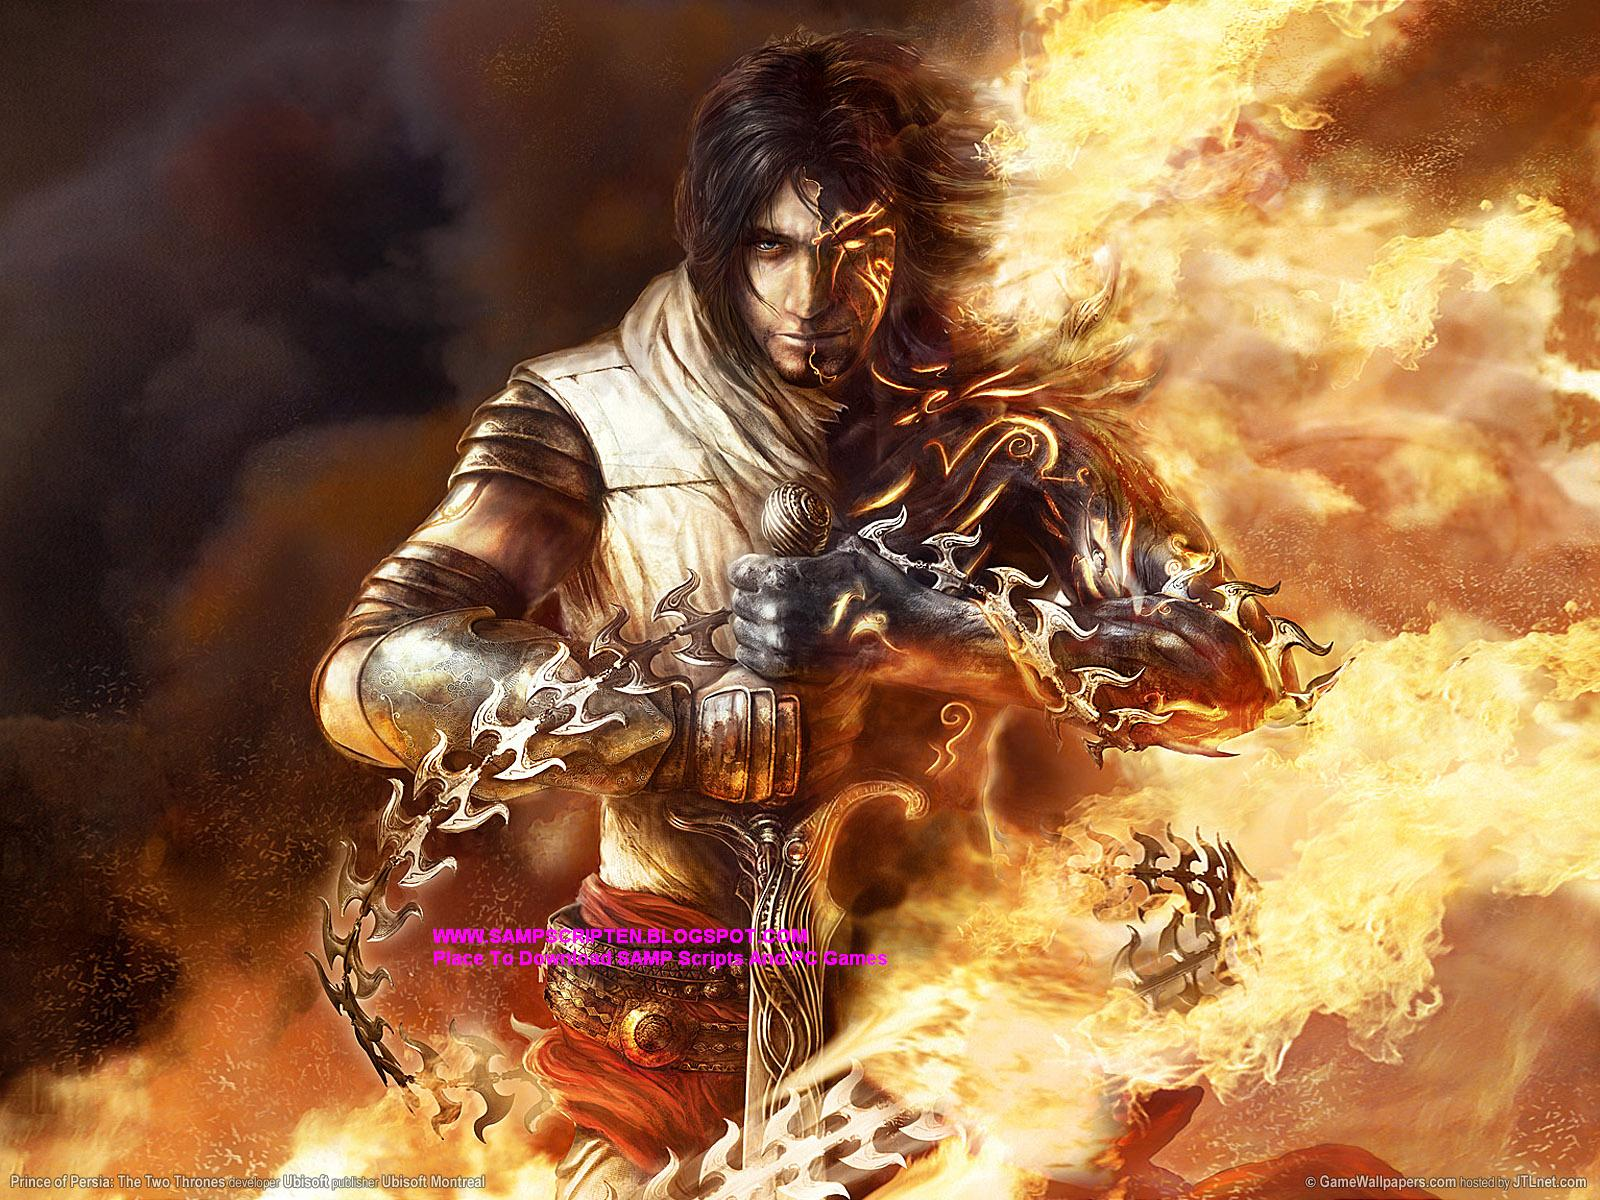 SA-MP+PC Games: Download Prince Of Persia The Two Thrones